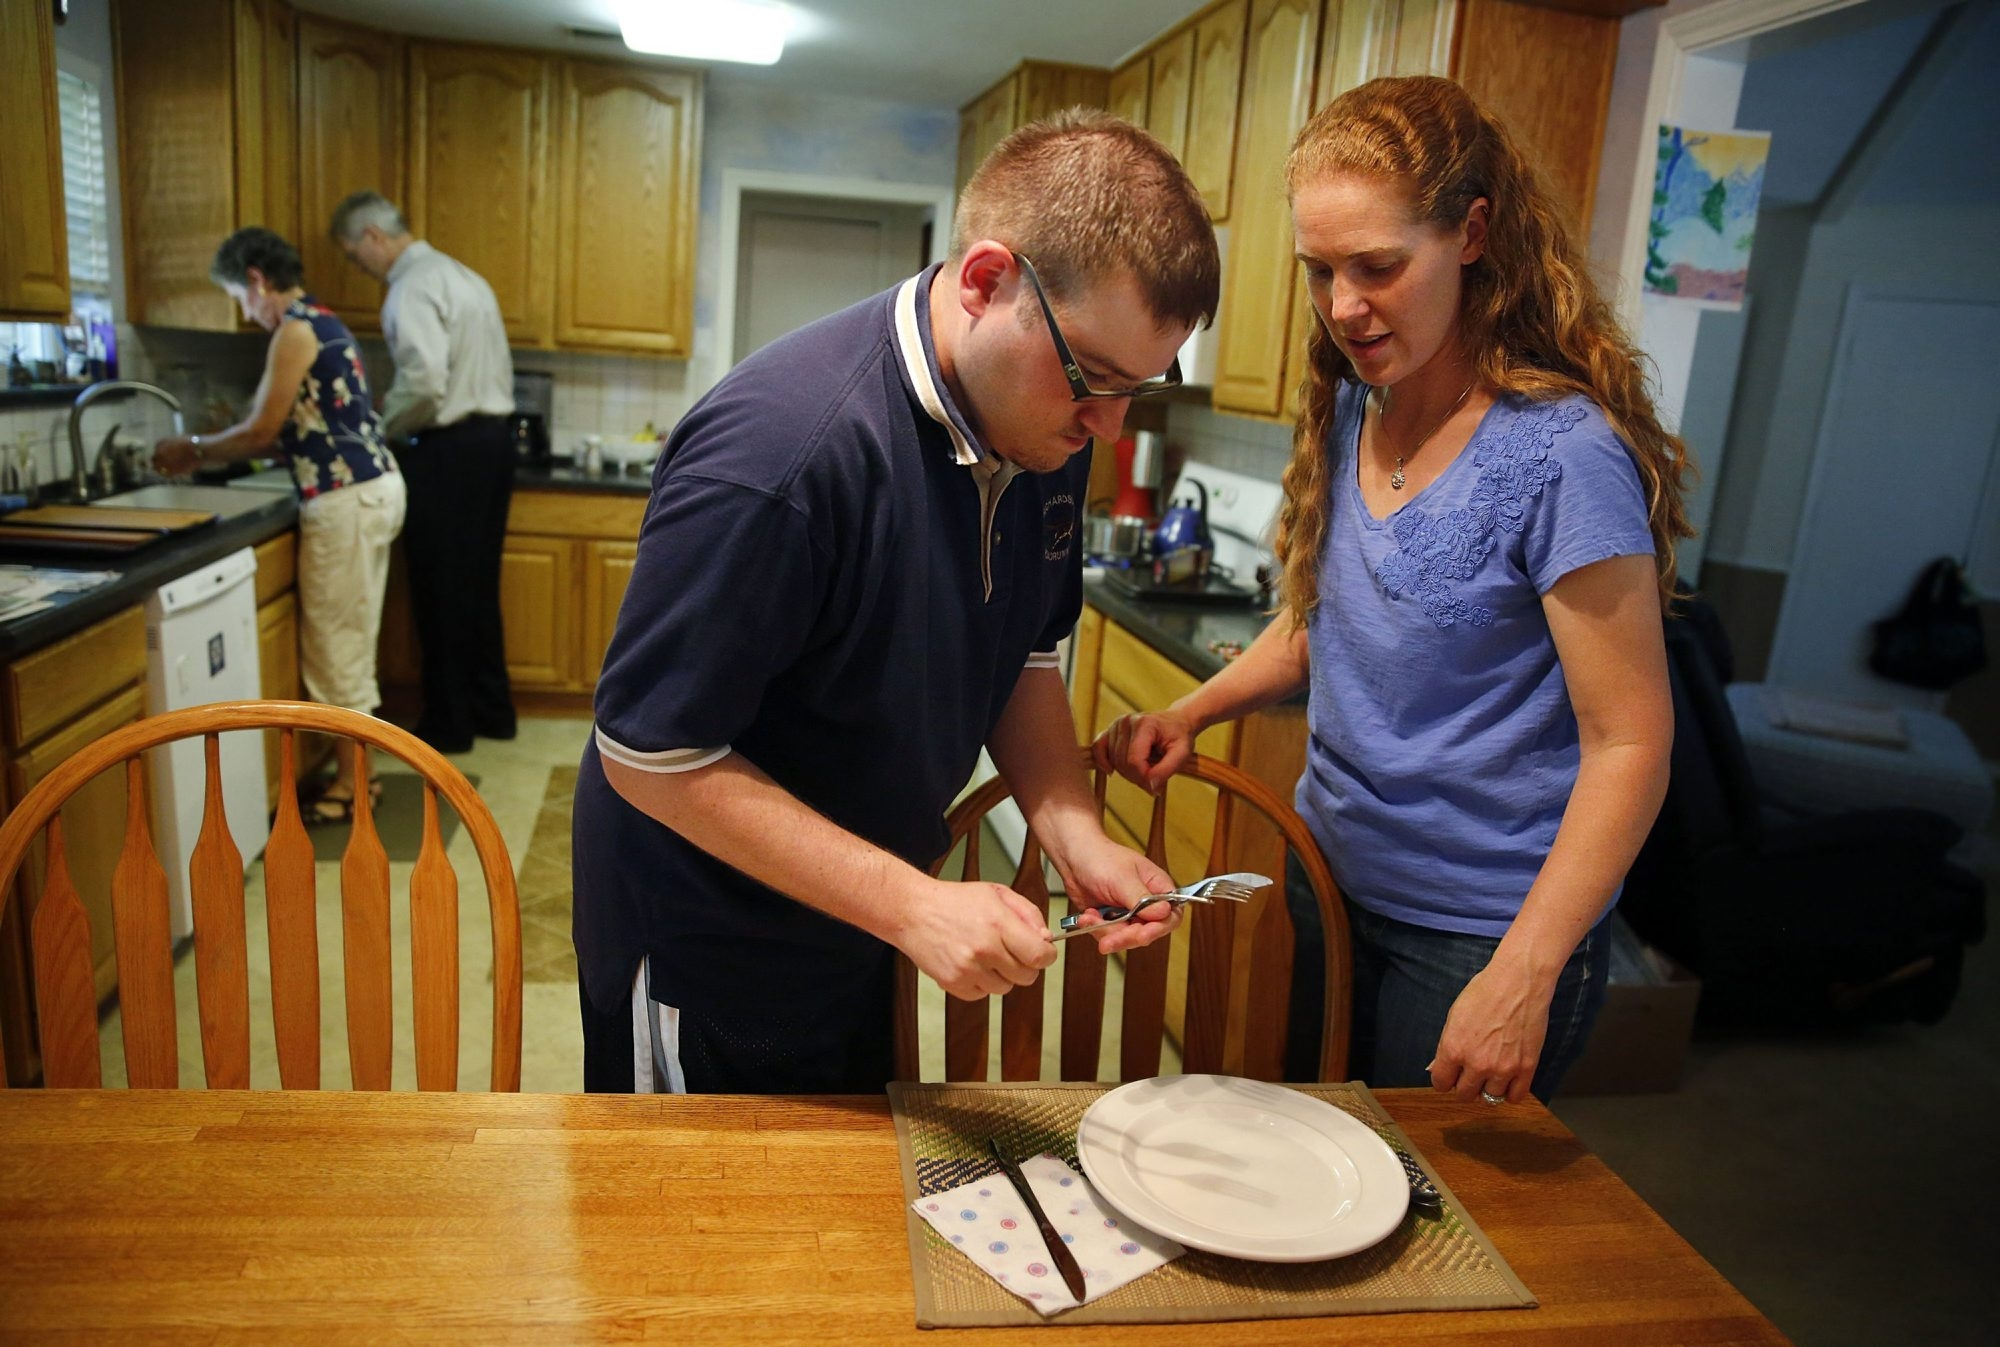 Mandy Dockweiler helps care for her brother, Max Adamczyk, in Far North Dallas, Texas.